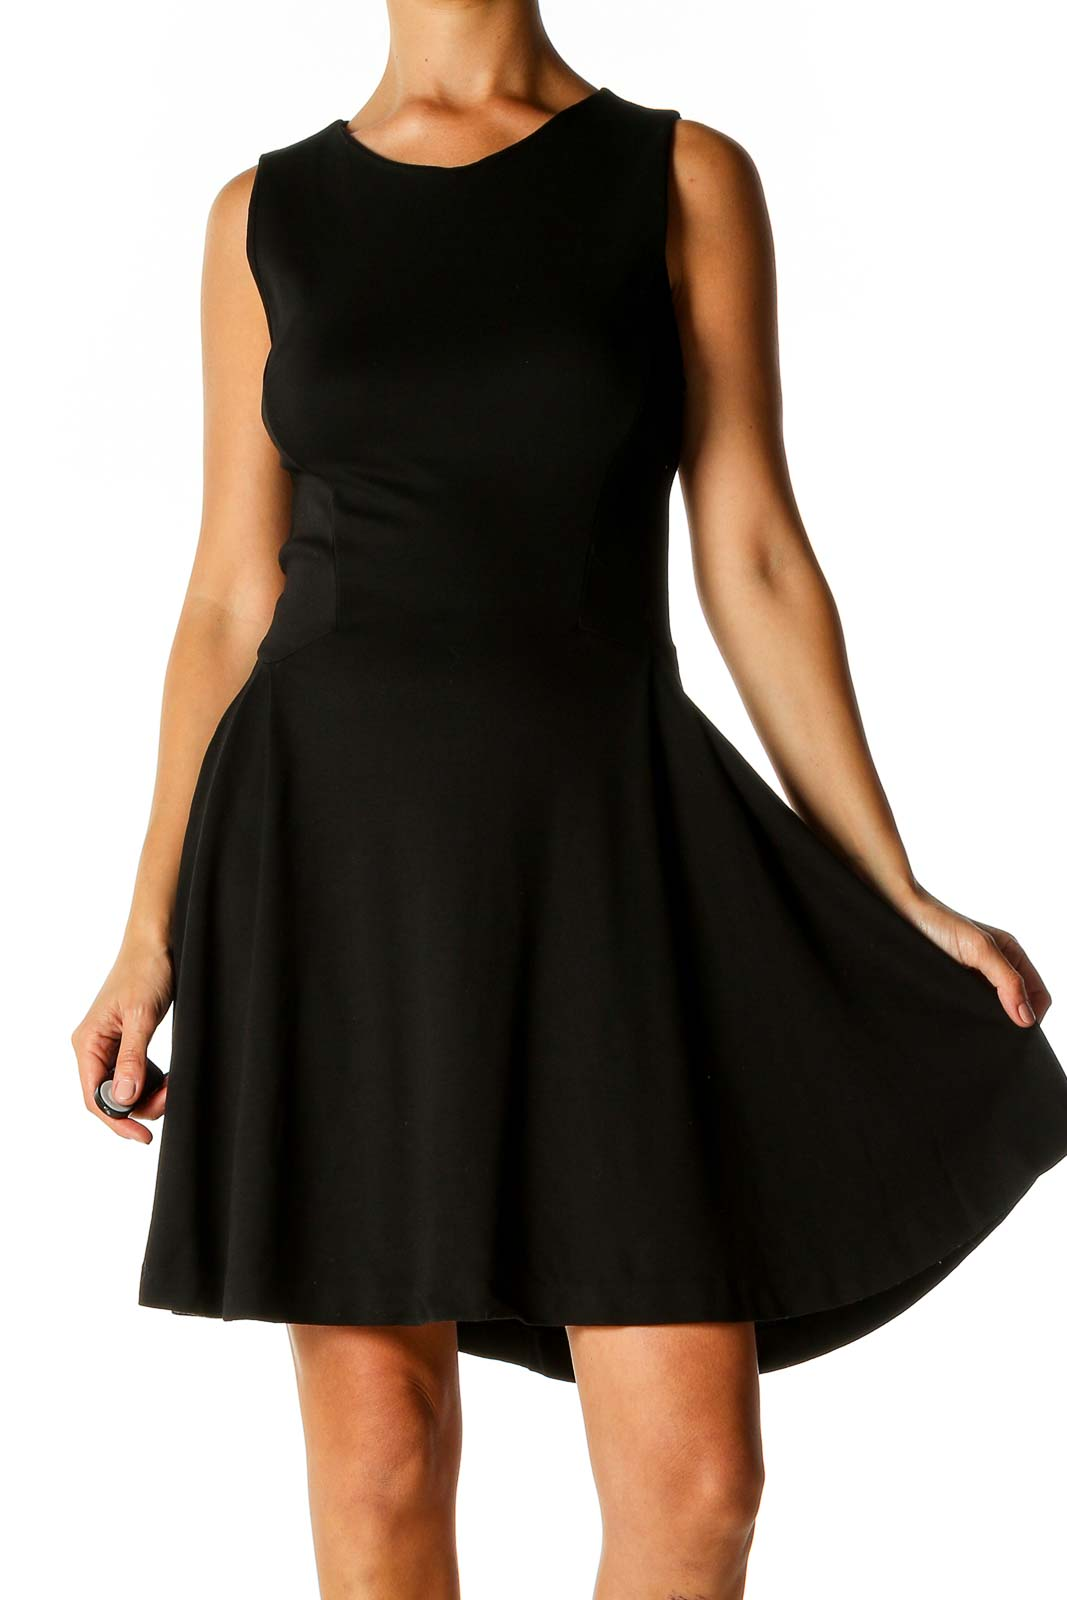 Black Solid Classic Fit & Flare Dress Front